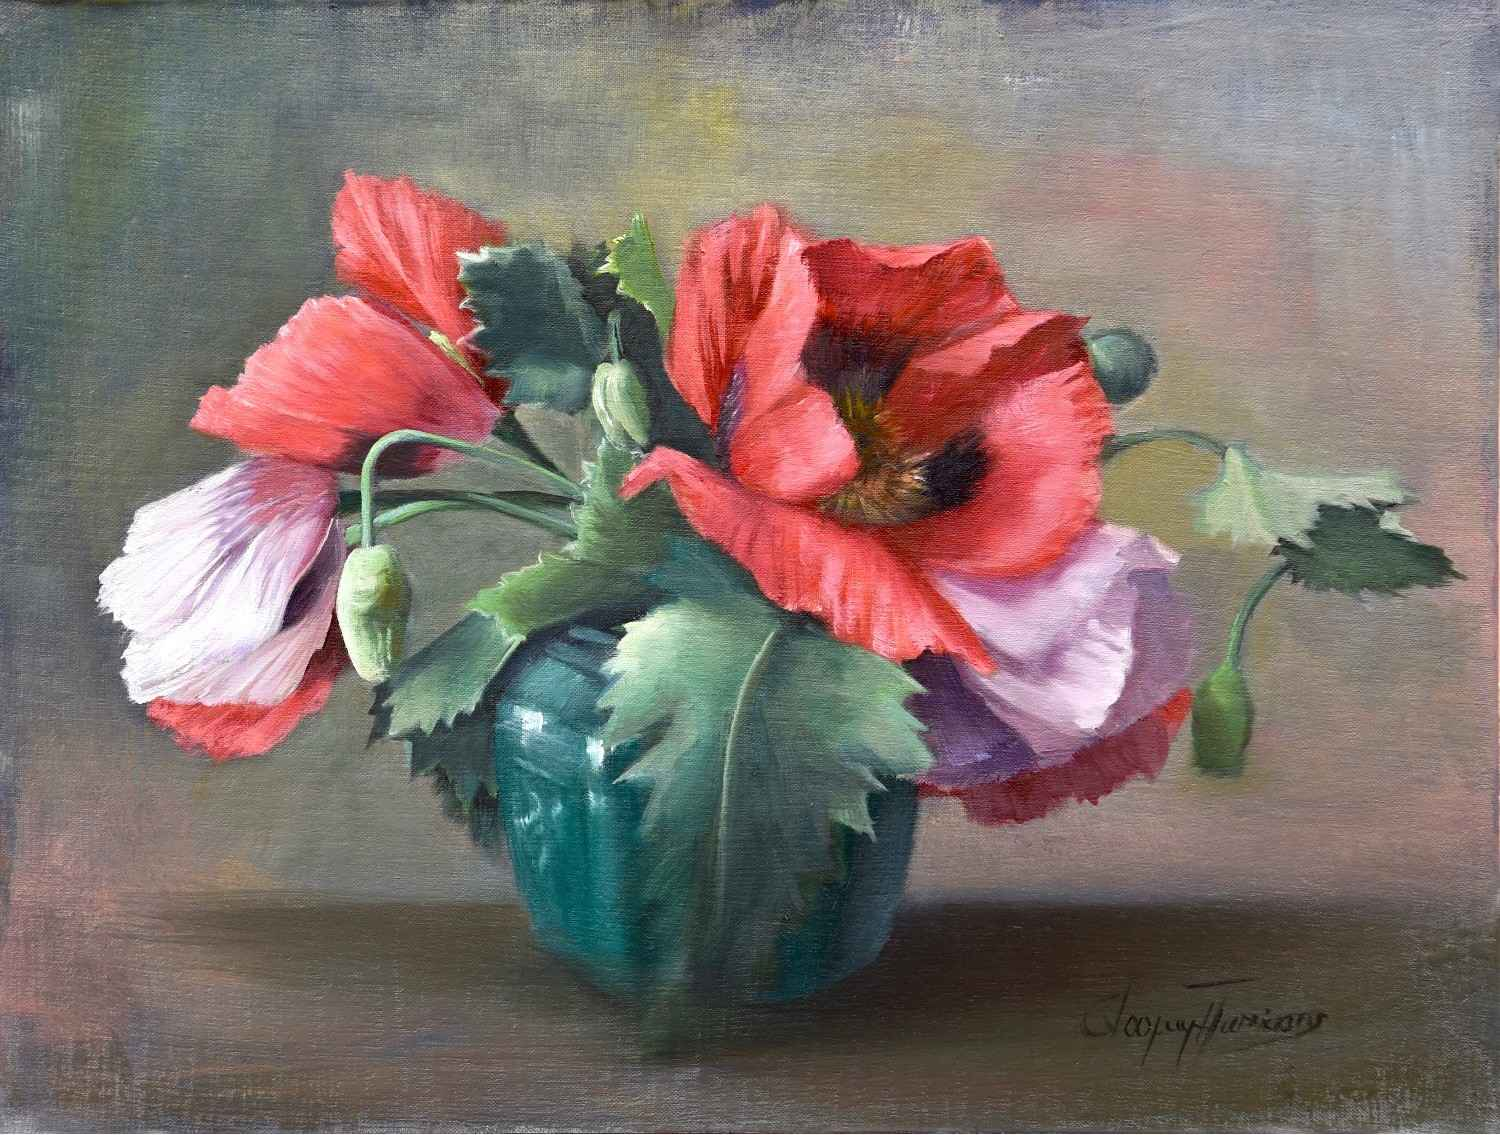 From My Garden by  Cary Jurriaans - Masterpiece Online